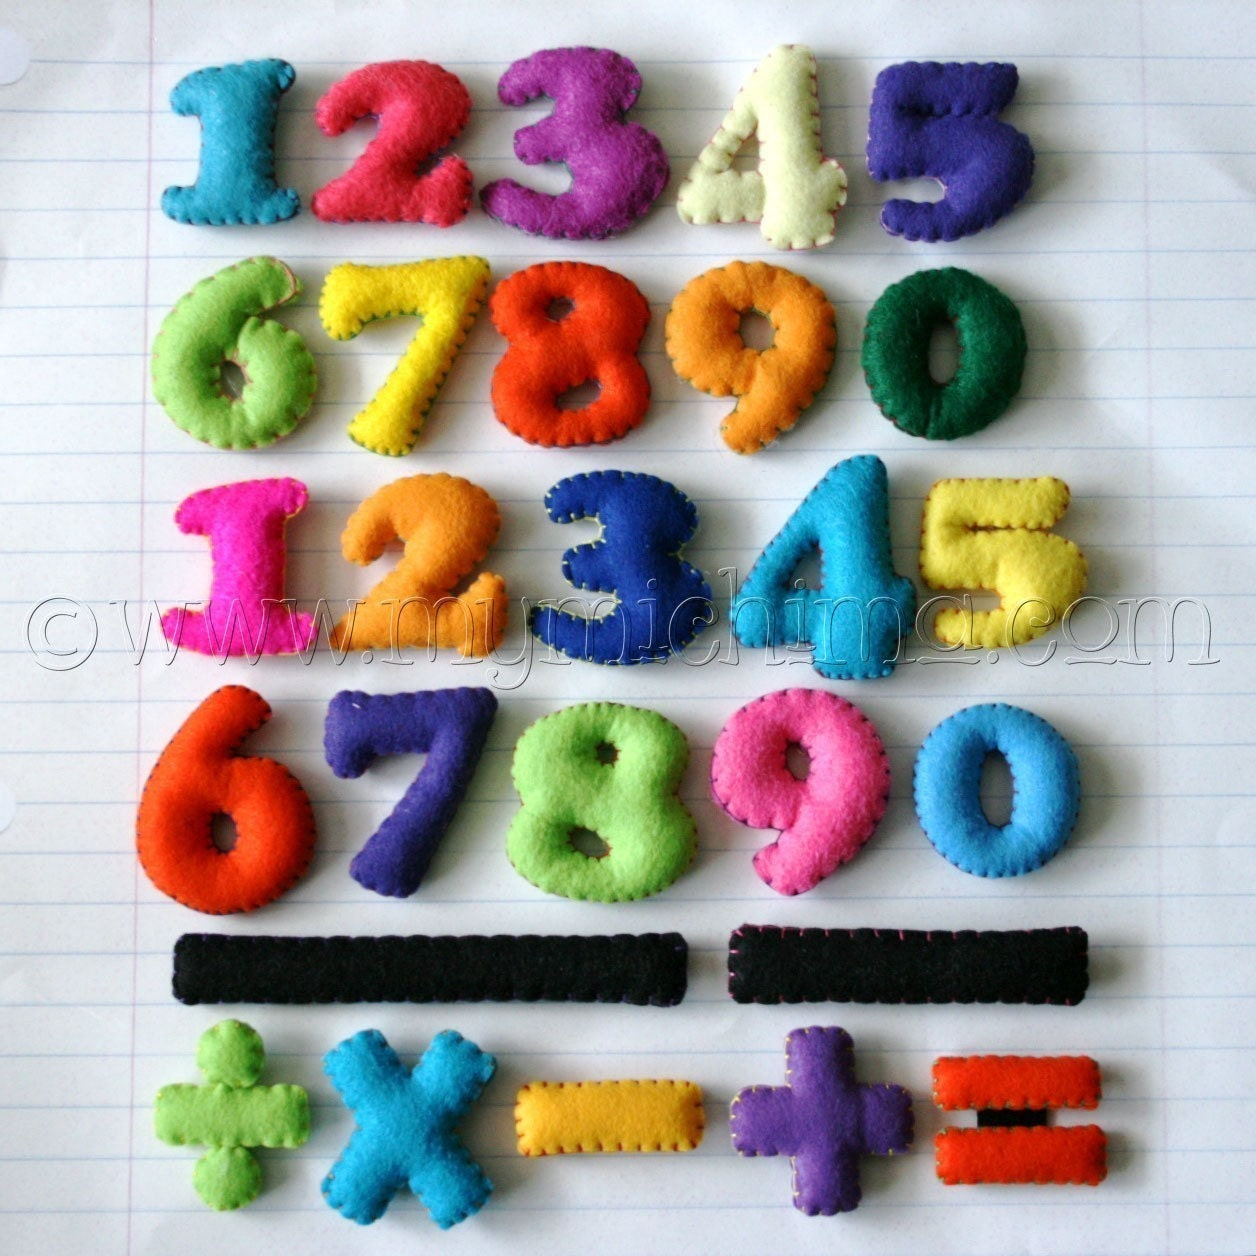 Magnetic Math Set - Stuffed Felt Numbers Magnet Set